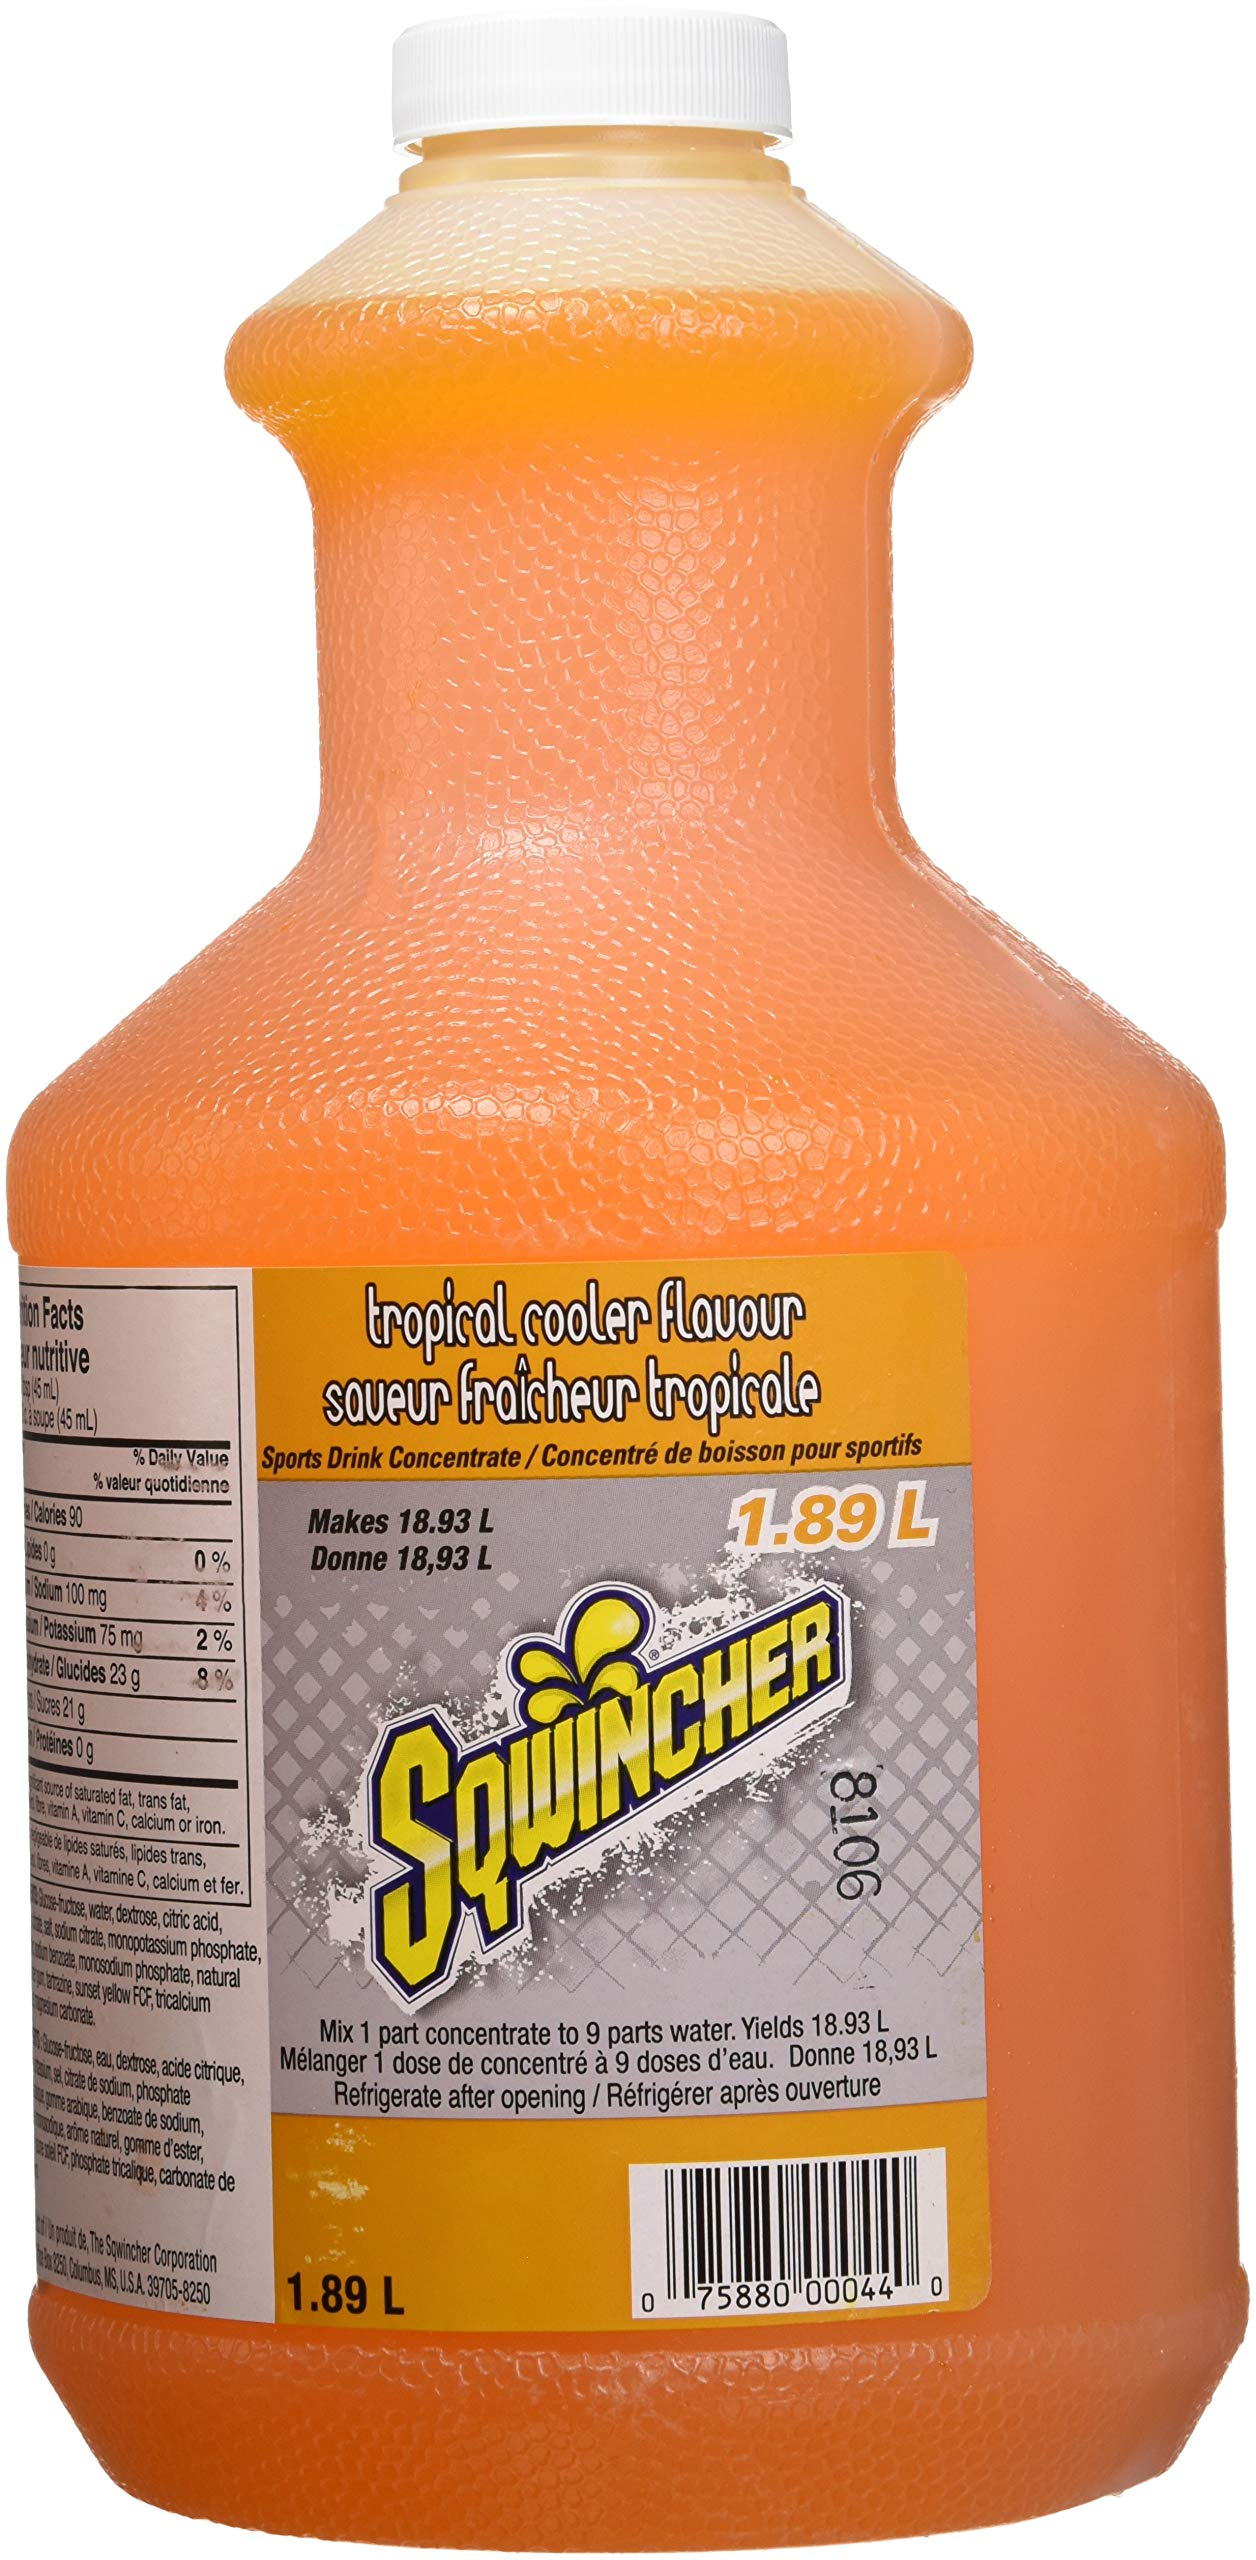 Sqwincher Liquid Concentrate Electrolyte Replacement, 5 Gallon Yield, Tropical Cooler 030329-TC (Pack of 6) by Sqwincher